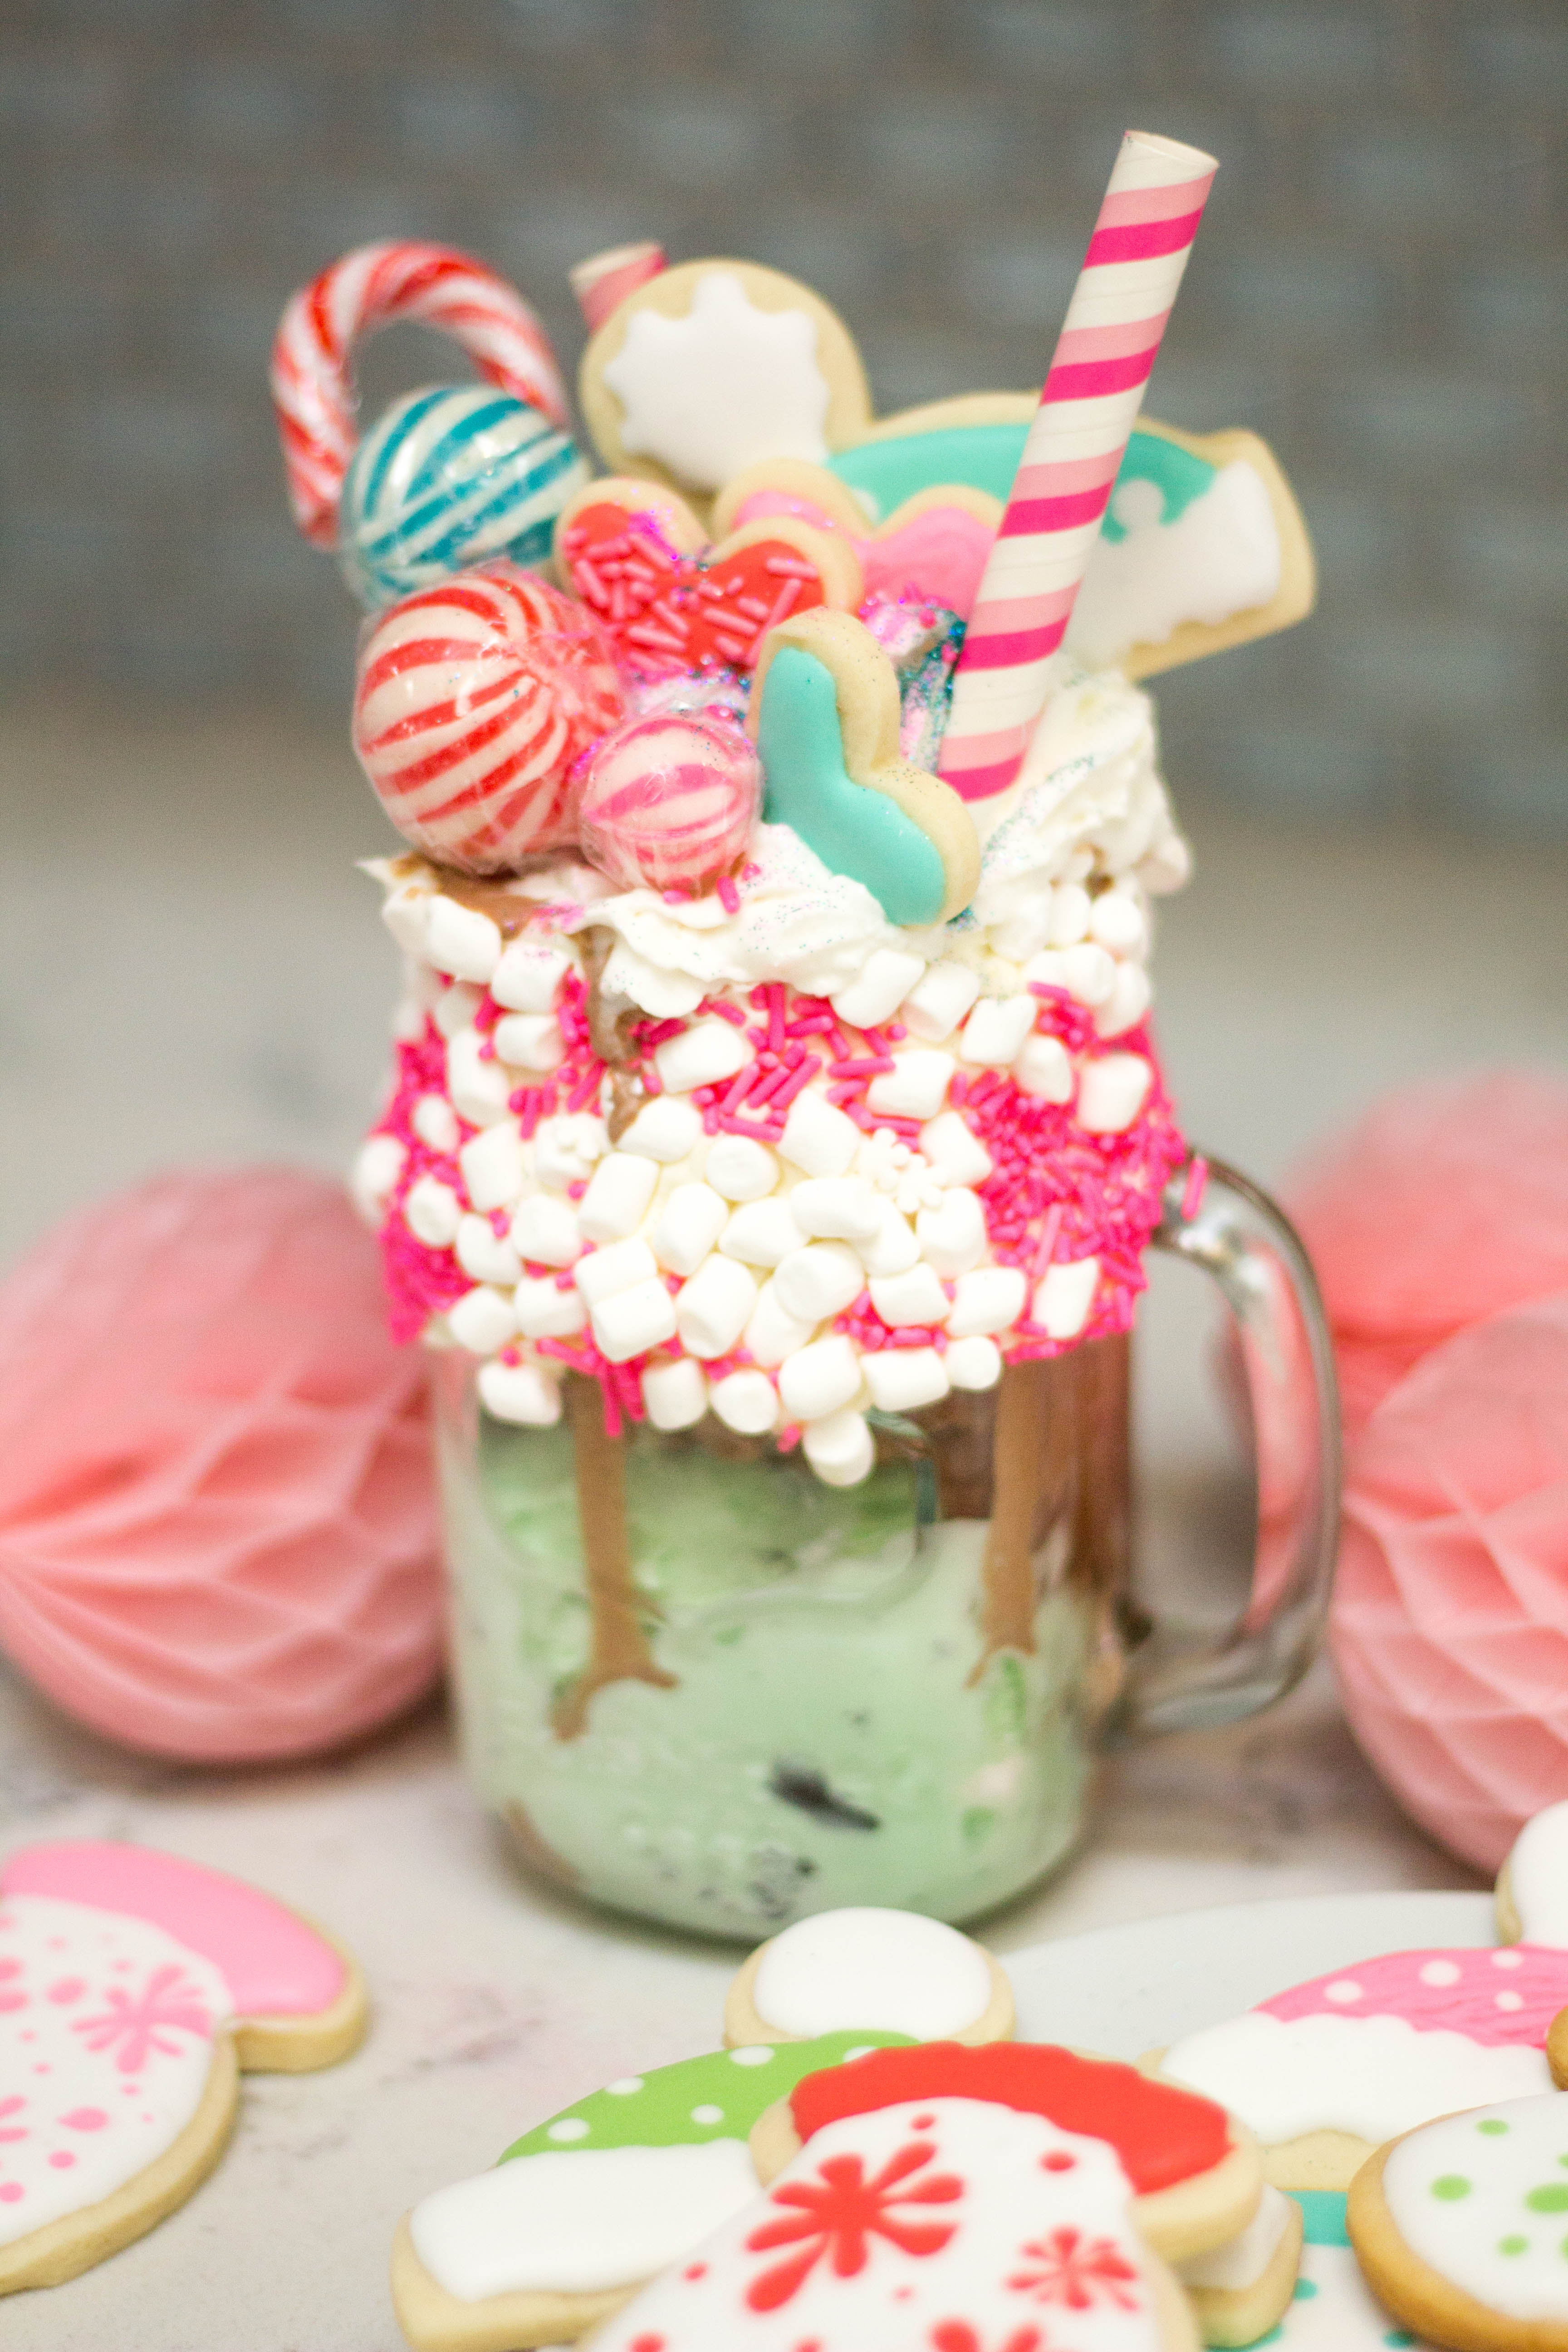 winter-baking-ice-cream-freak-shake-creative-desserts-overload-30